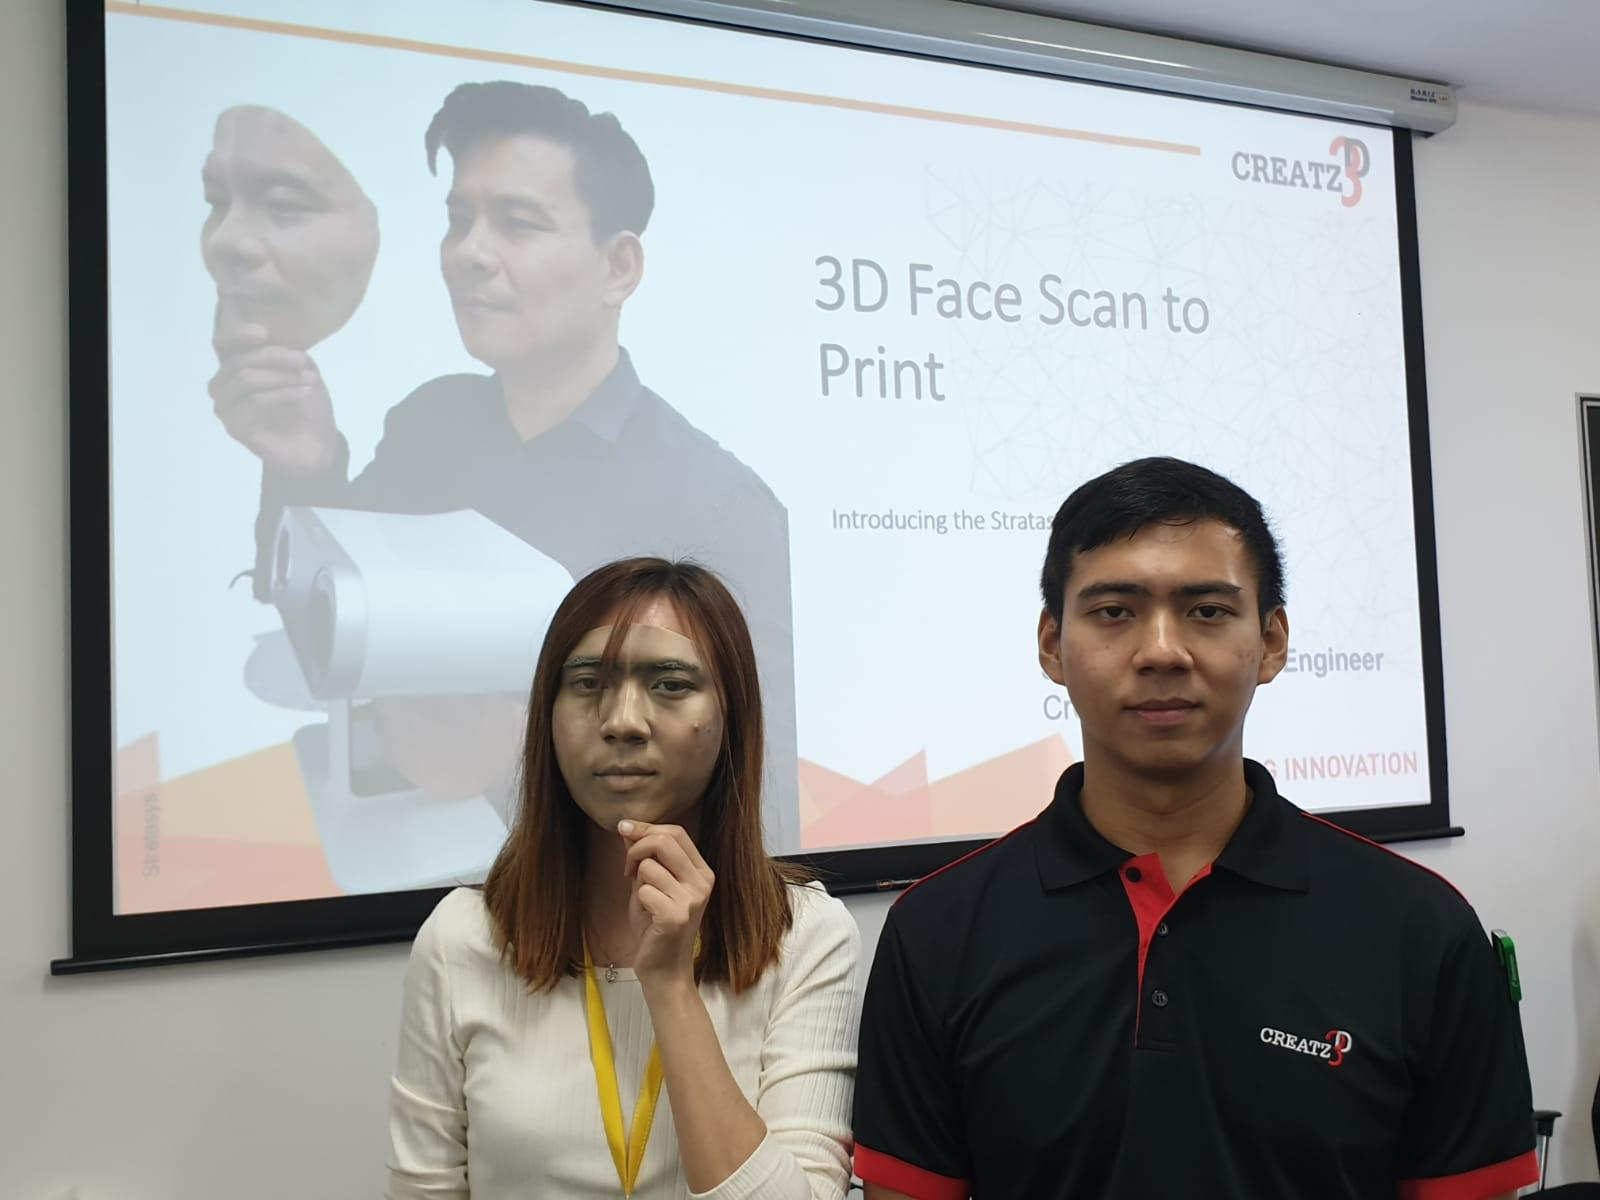 Realistic 3D Scan to 3D Print demonstration.